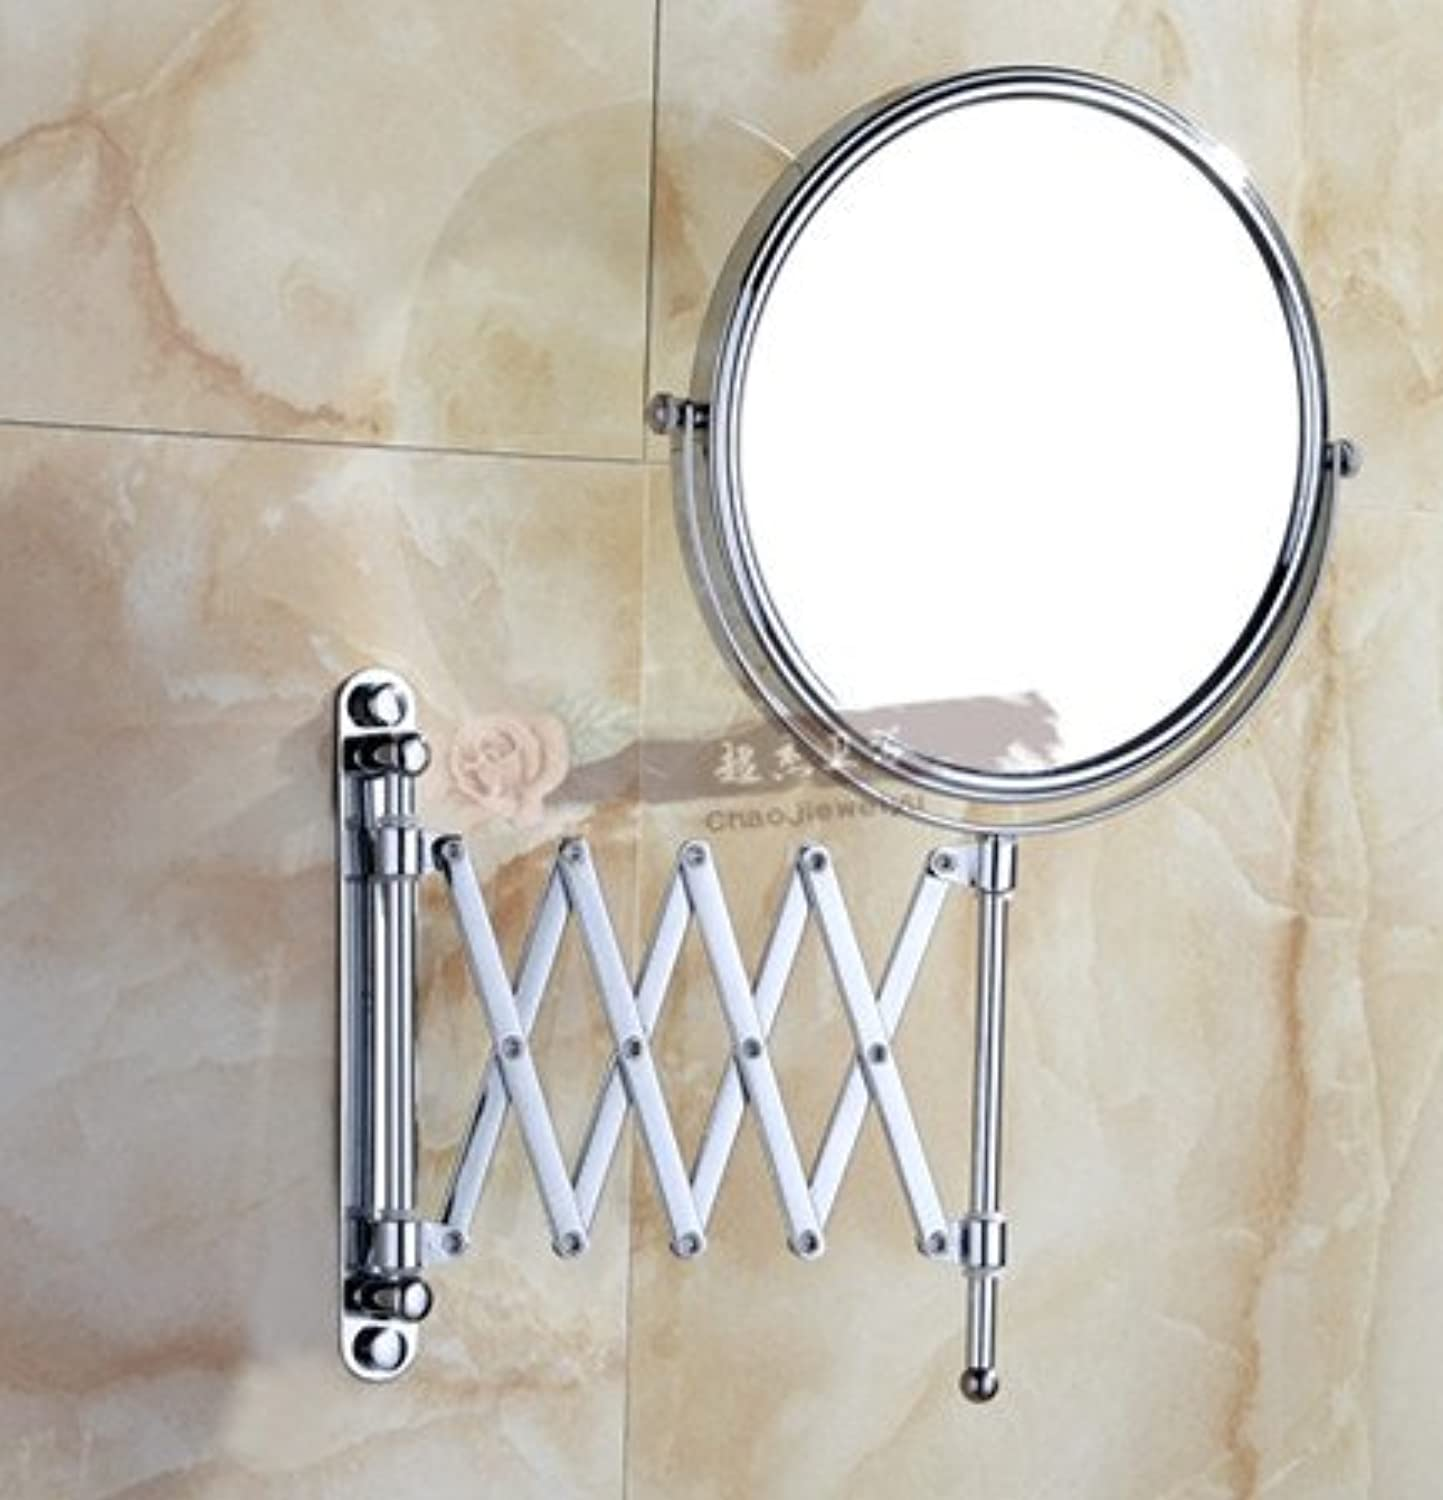 Bathroom vanity mirror door-mounted telescopic mirror wall mount makeup mirror 8 inch